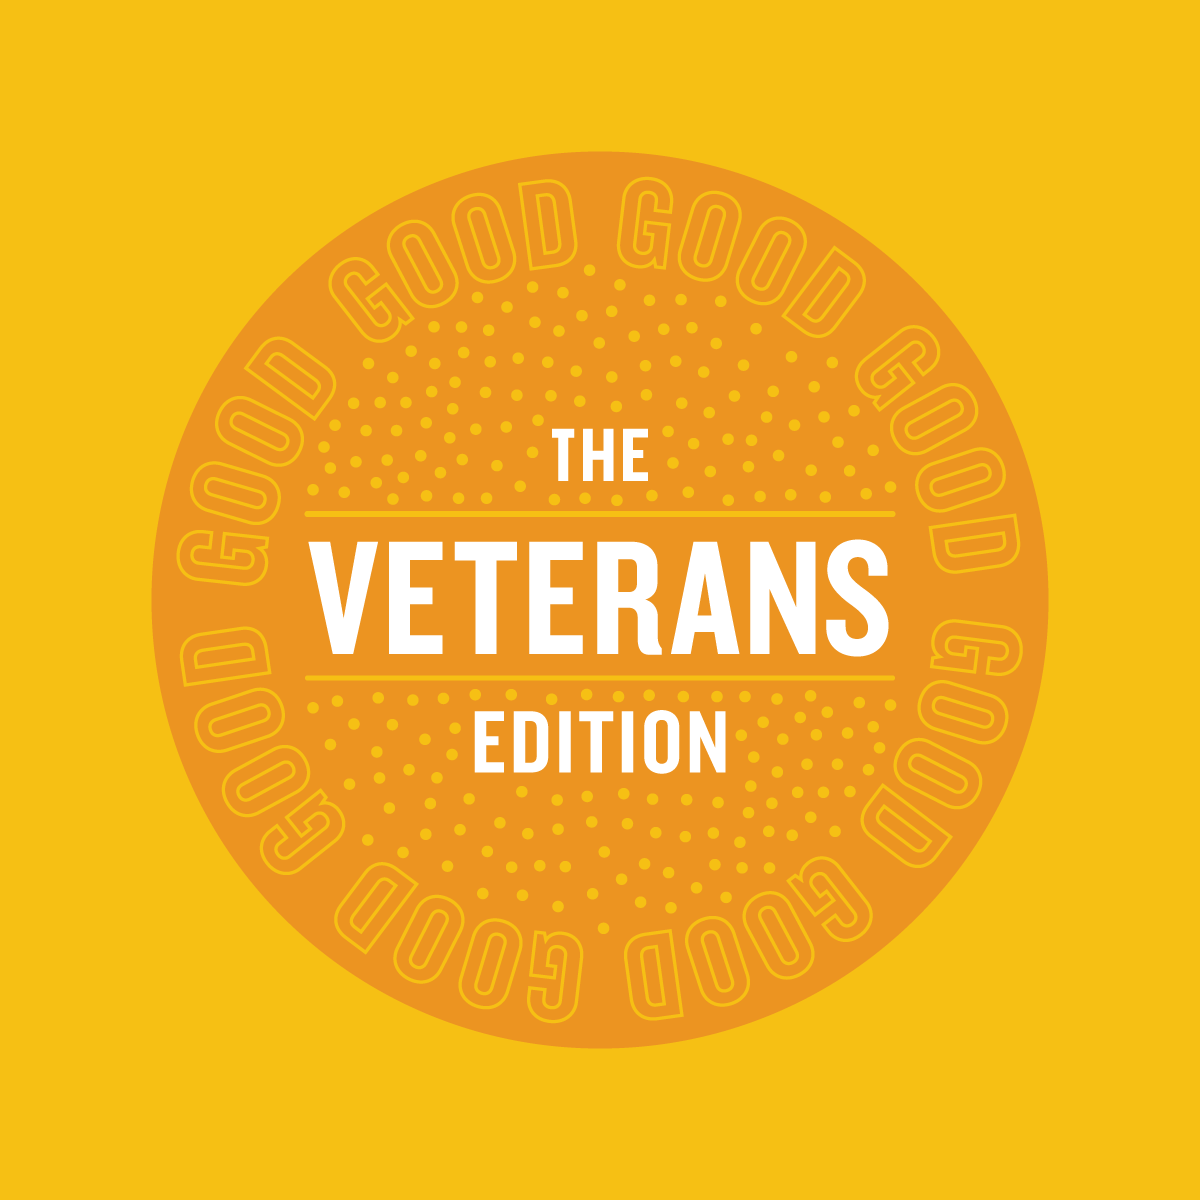 Good News About Veterans in the Goodnewspaper